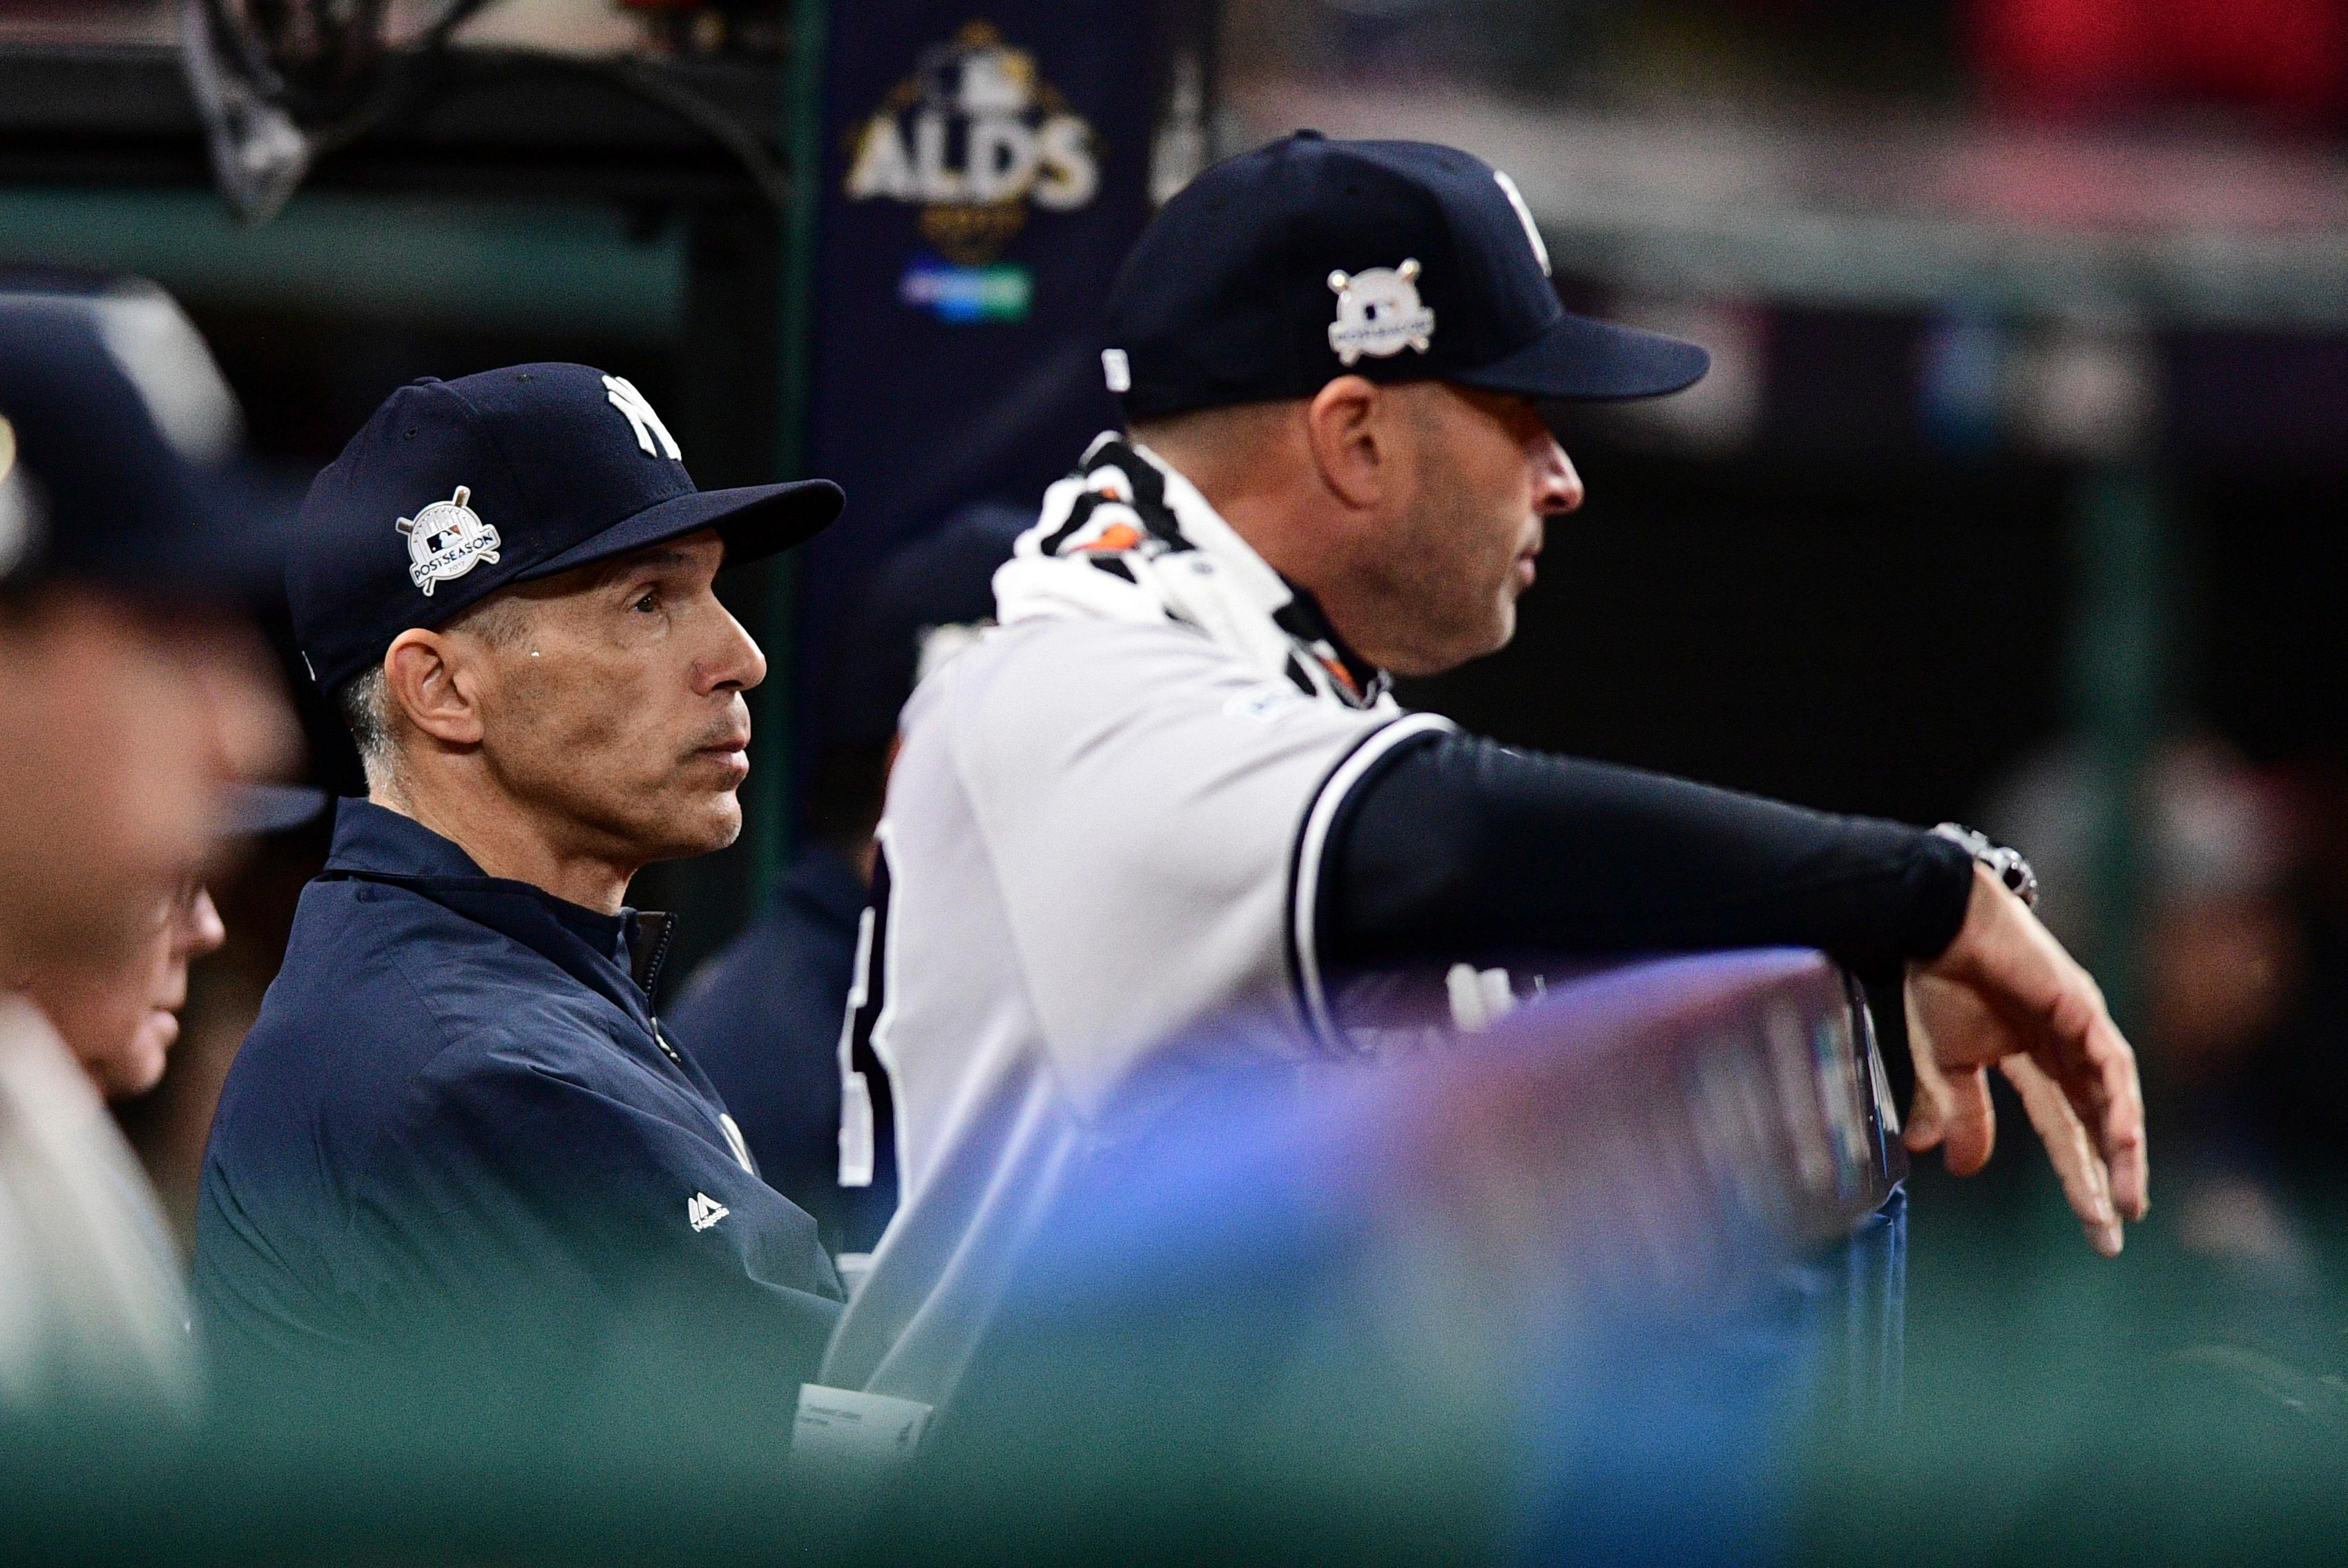 New York Yankees manager Joe Girardi watches from the dugout during the fifth inning of Game 5 of the baseball team's American League Division Series against the Cleveland Indians, Wednesday, Oct. 11, 2017, in Cleveland. (AP Photo/David Dermer)